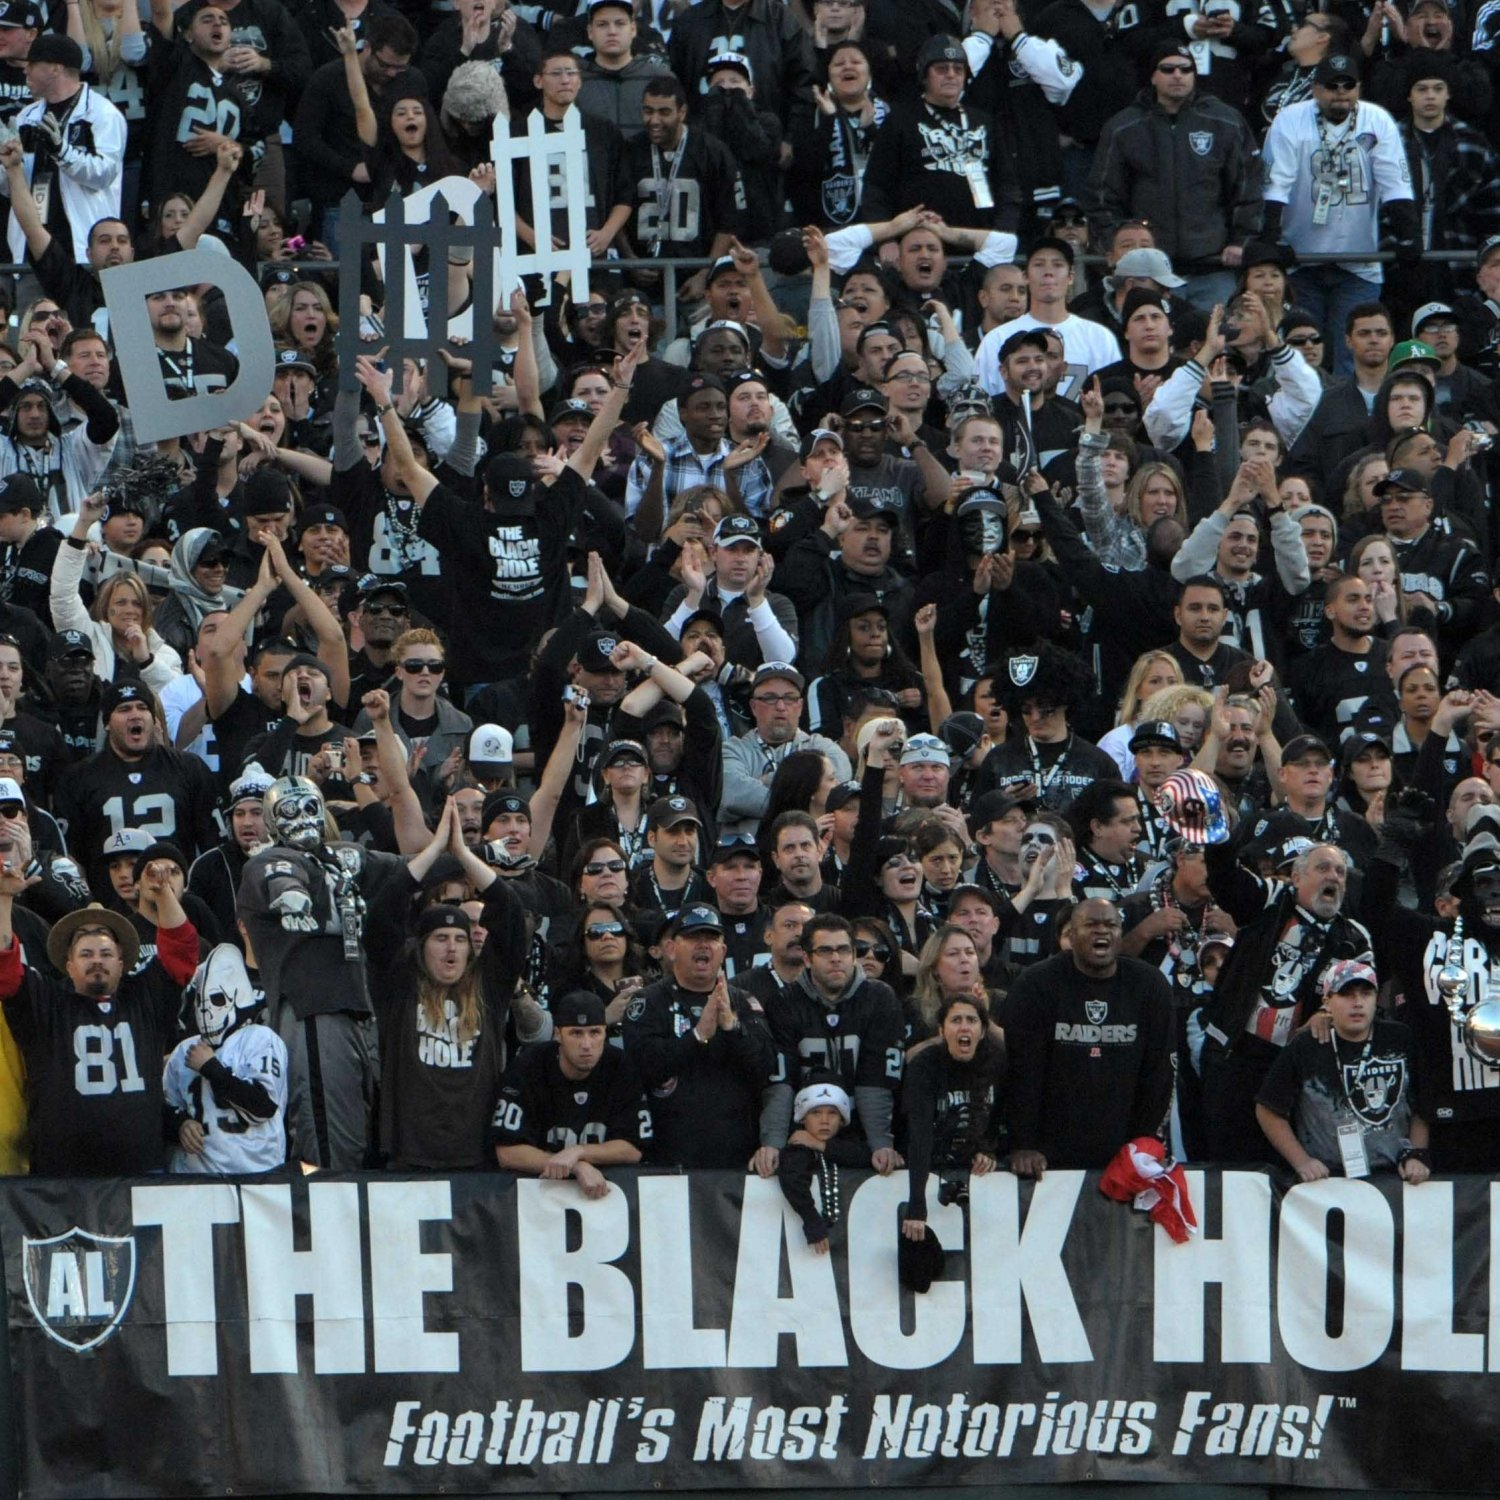 Raiders New Stadium: Oakland Raiders, NFL, Reportedly Hold Secret Meeting To